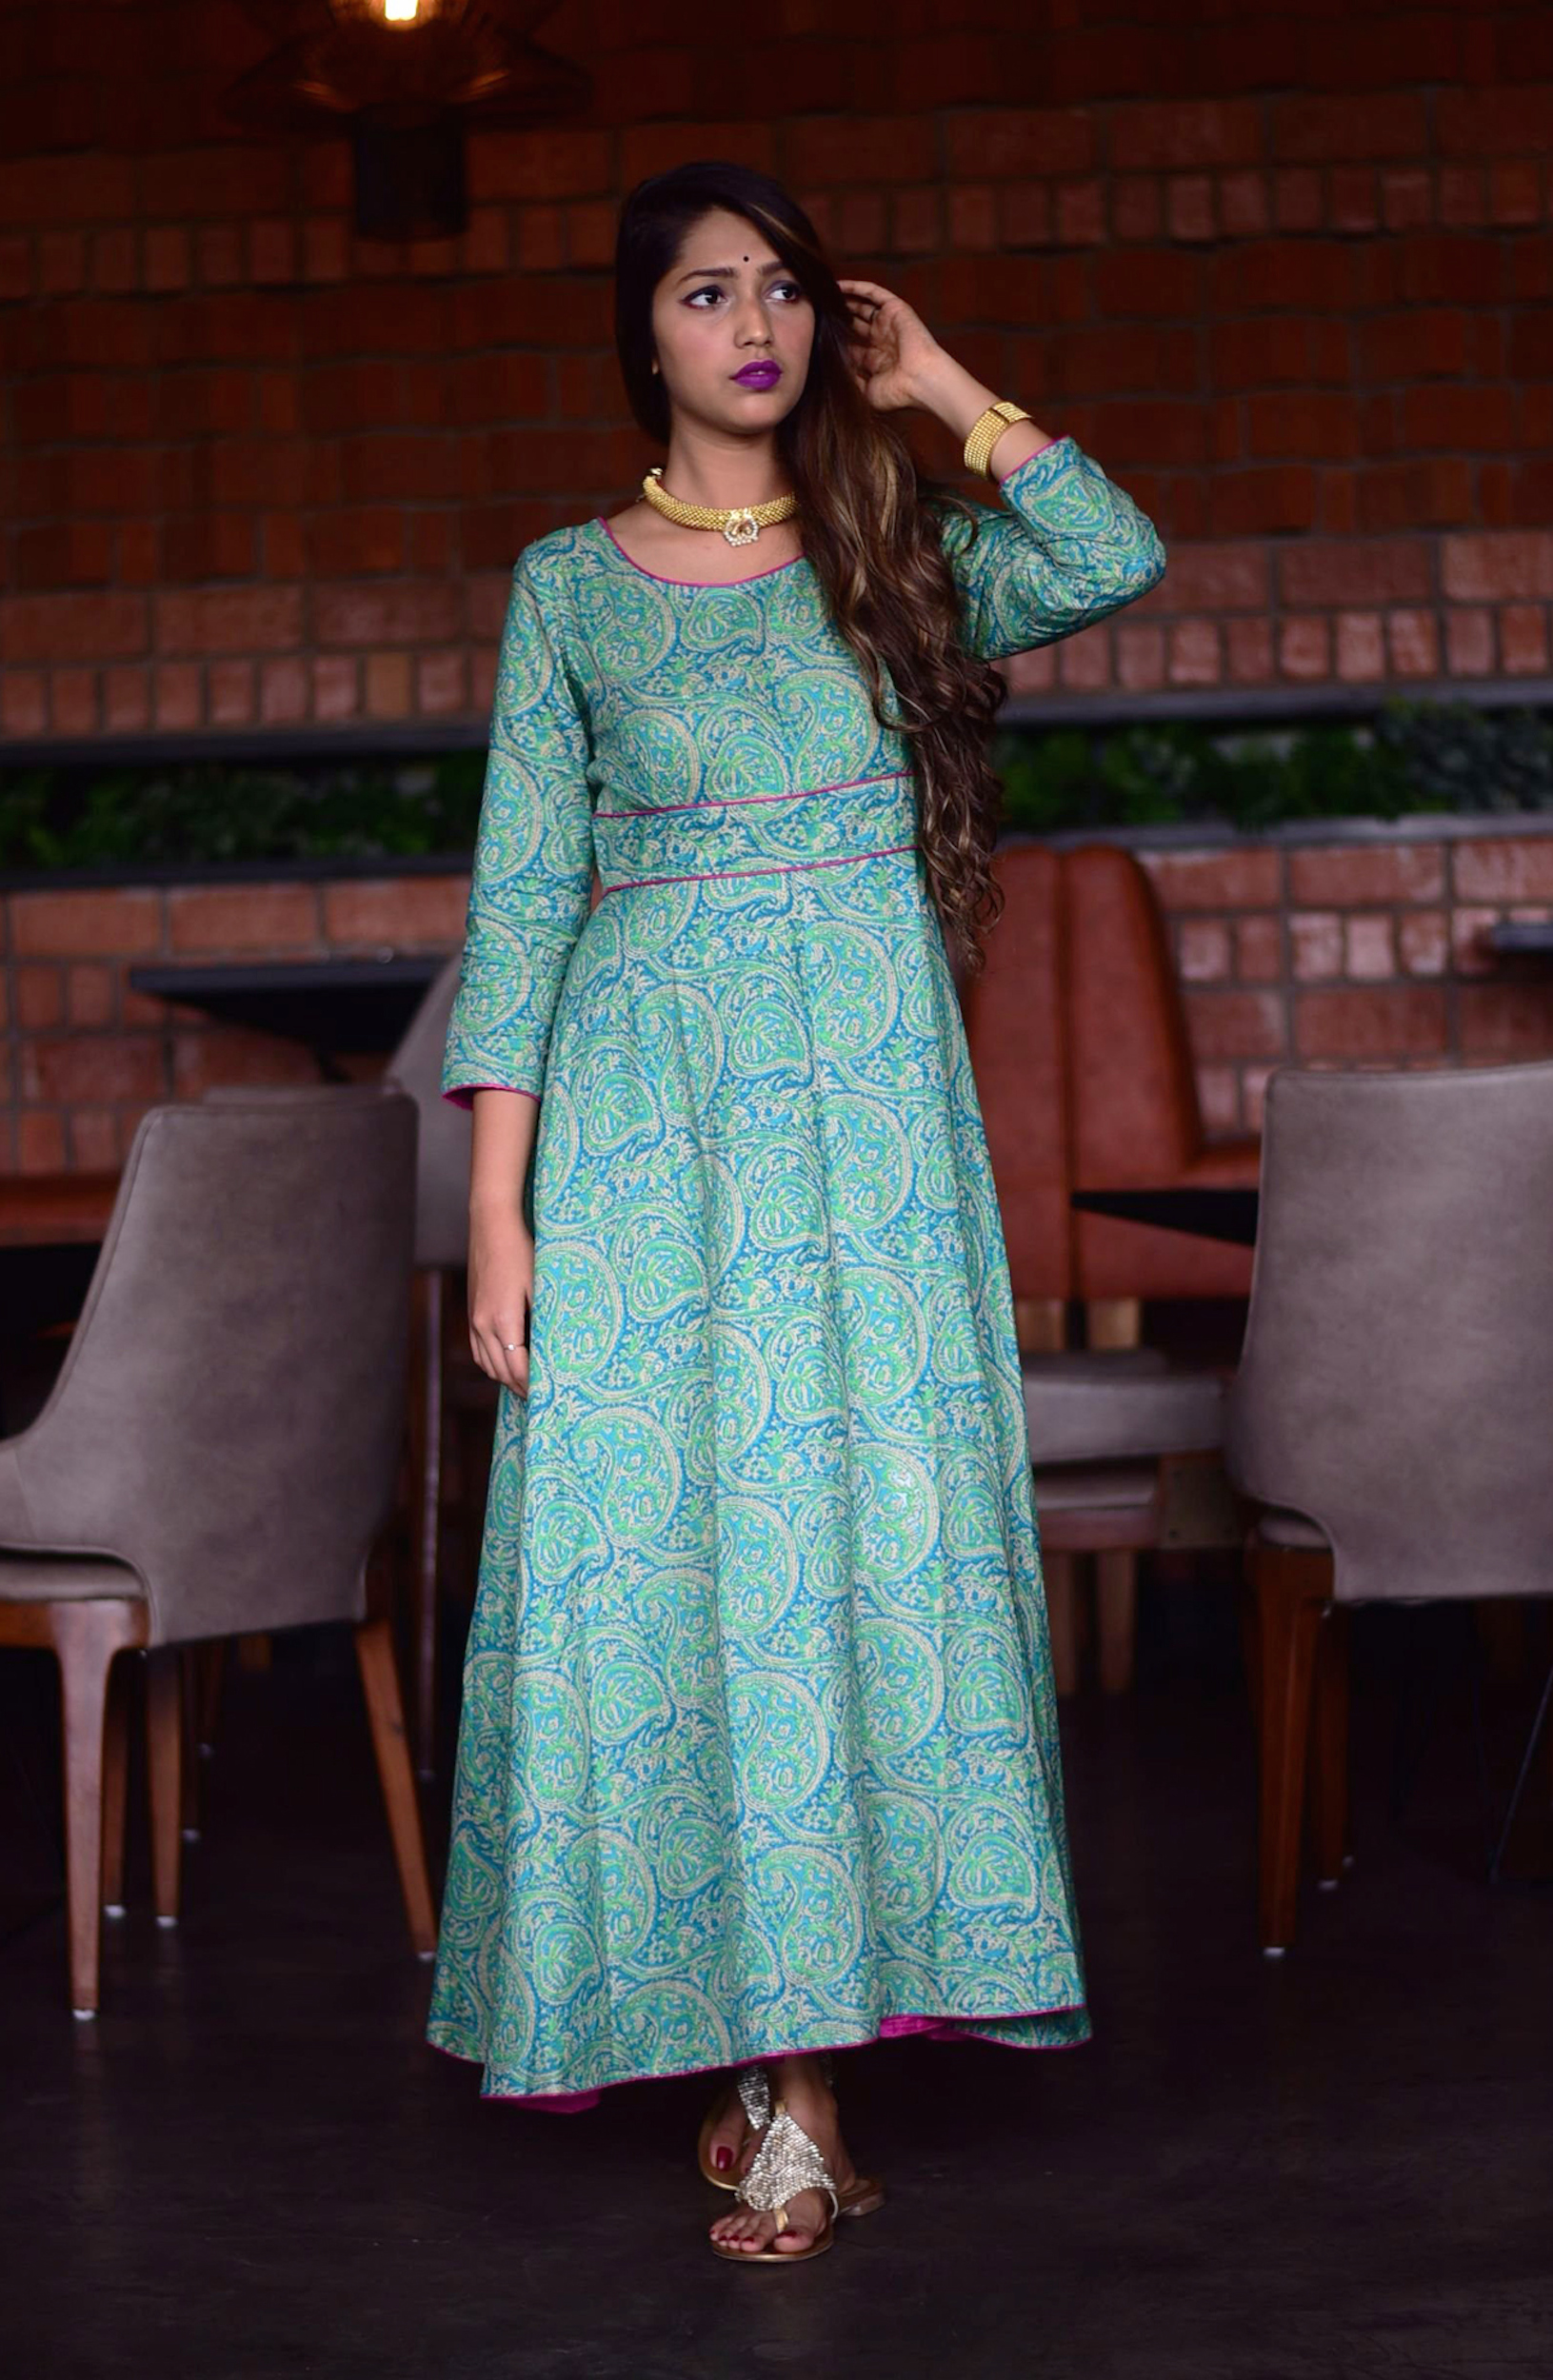 Emerald green paisley tunic